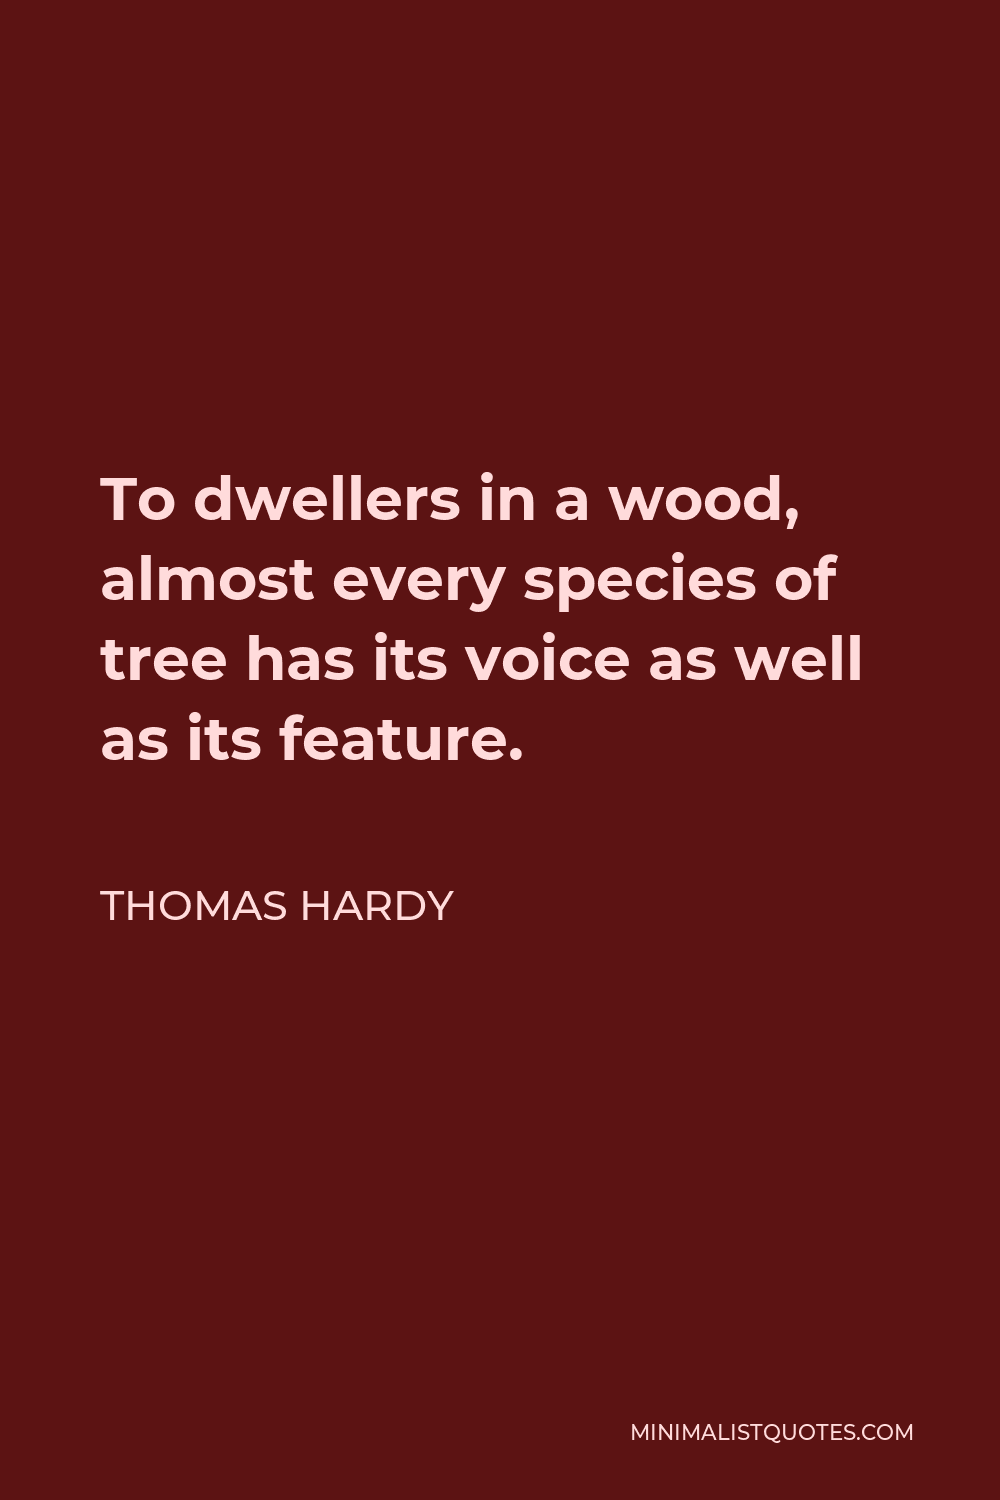 Thomas Hardy Quote - To dwellers in a wood, almost every species of tree has its voice as well as its feature.